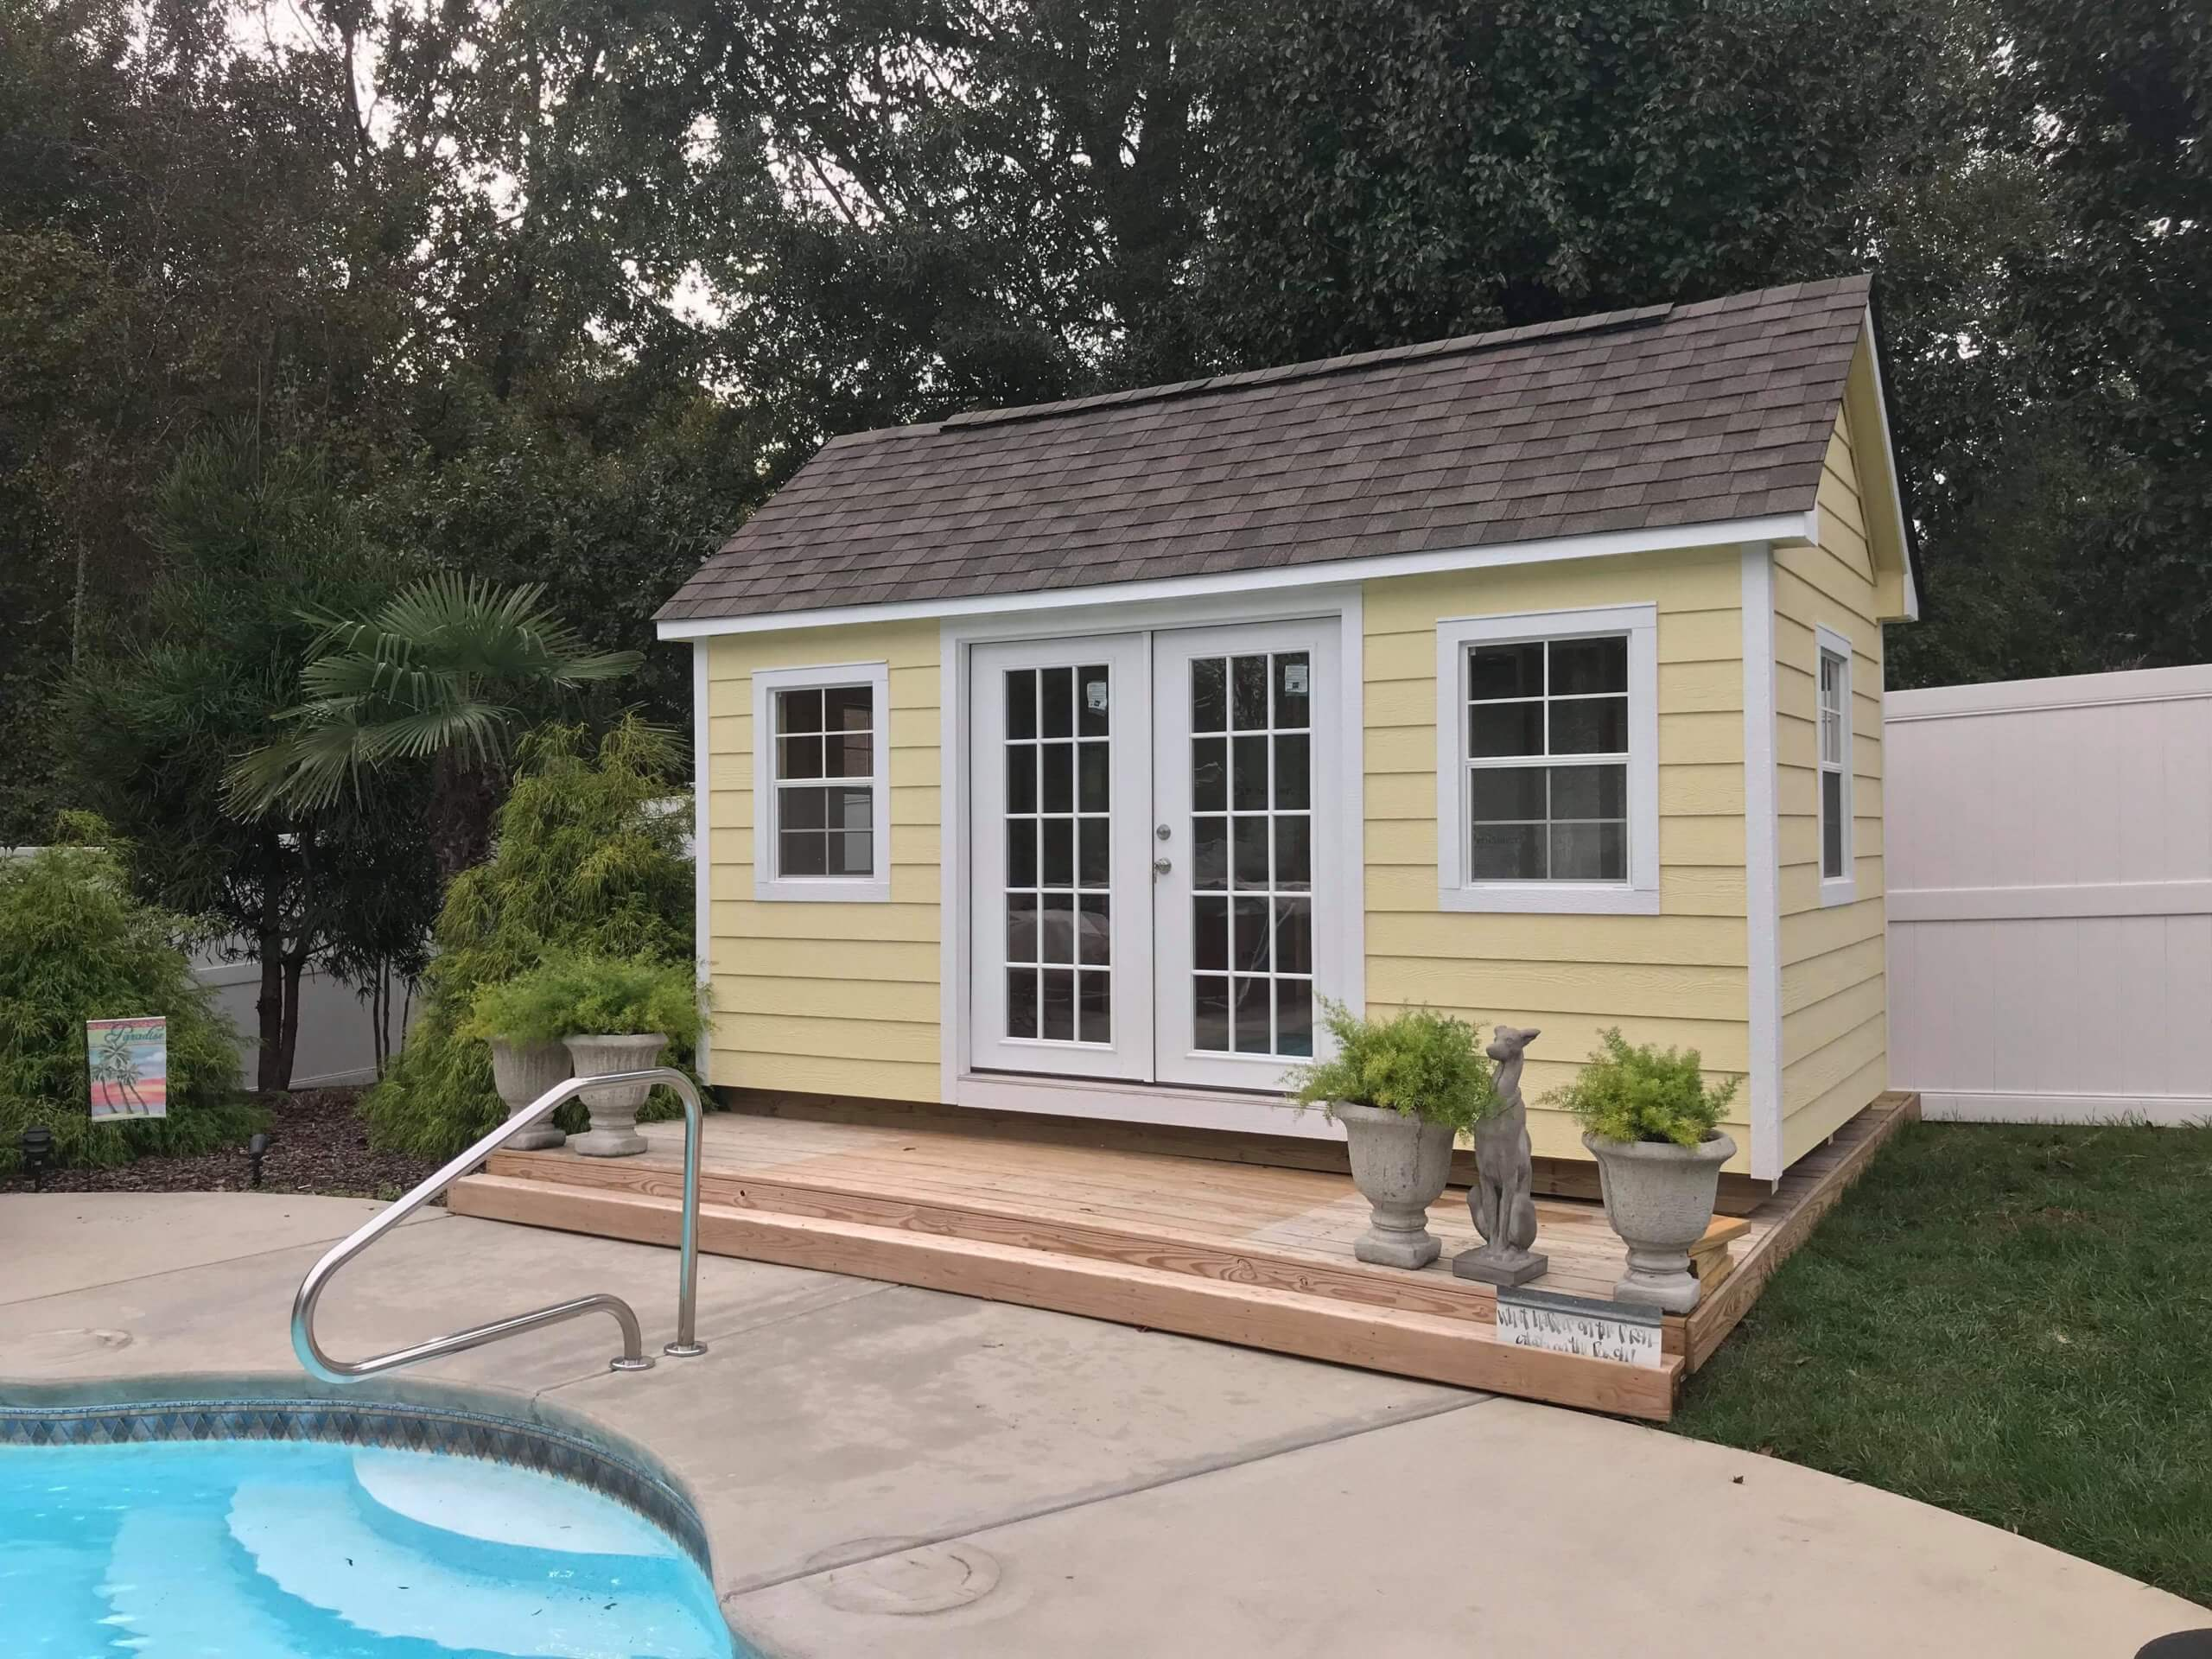 Portable yellow pool changing room from Shed Depot NC